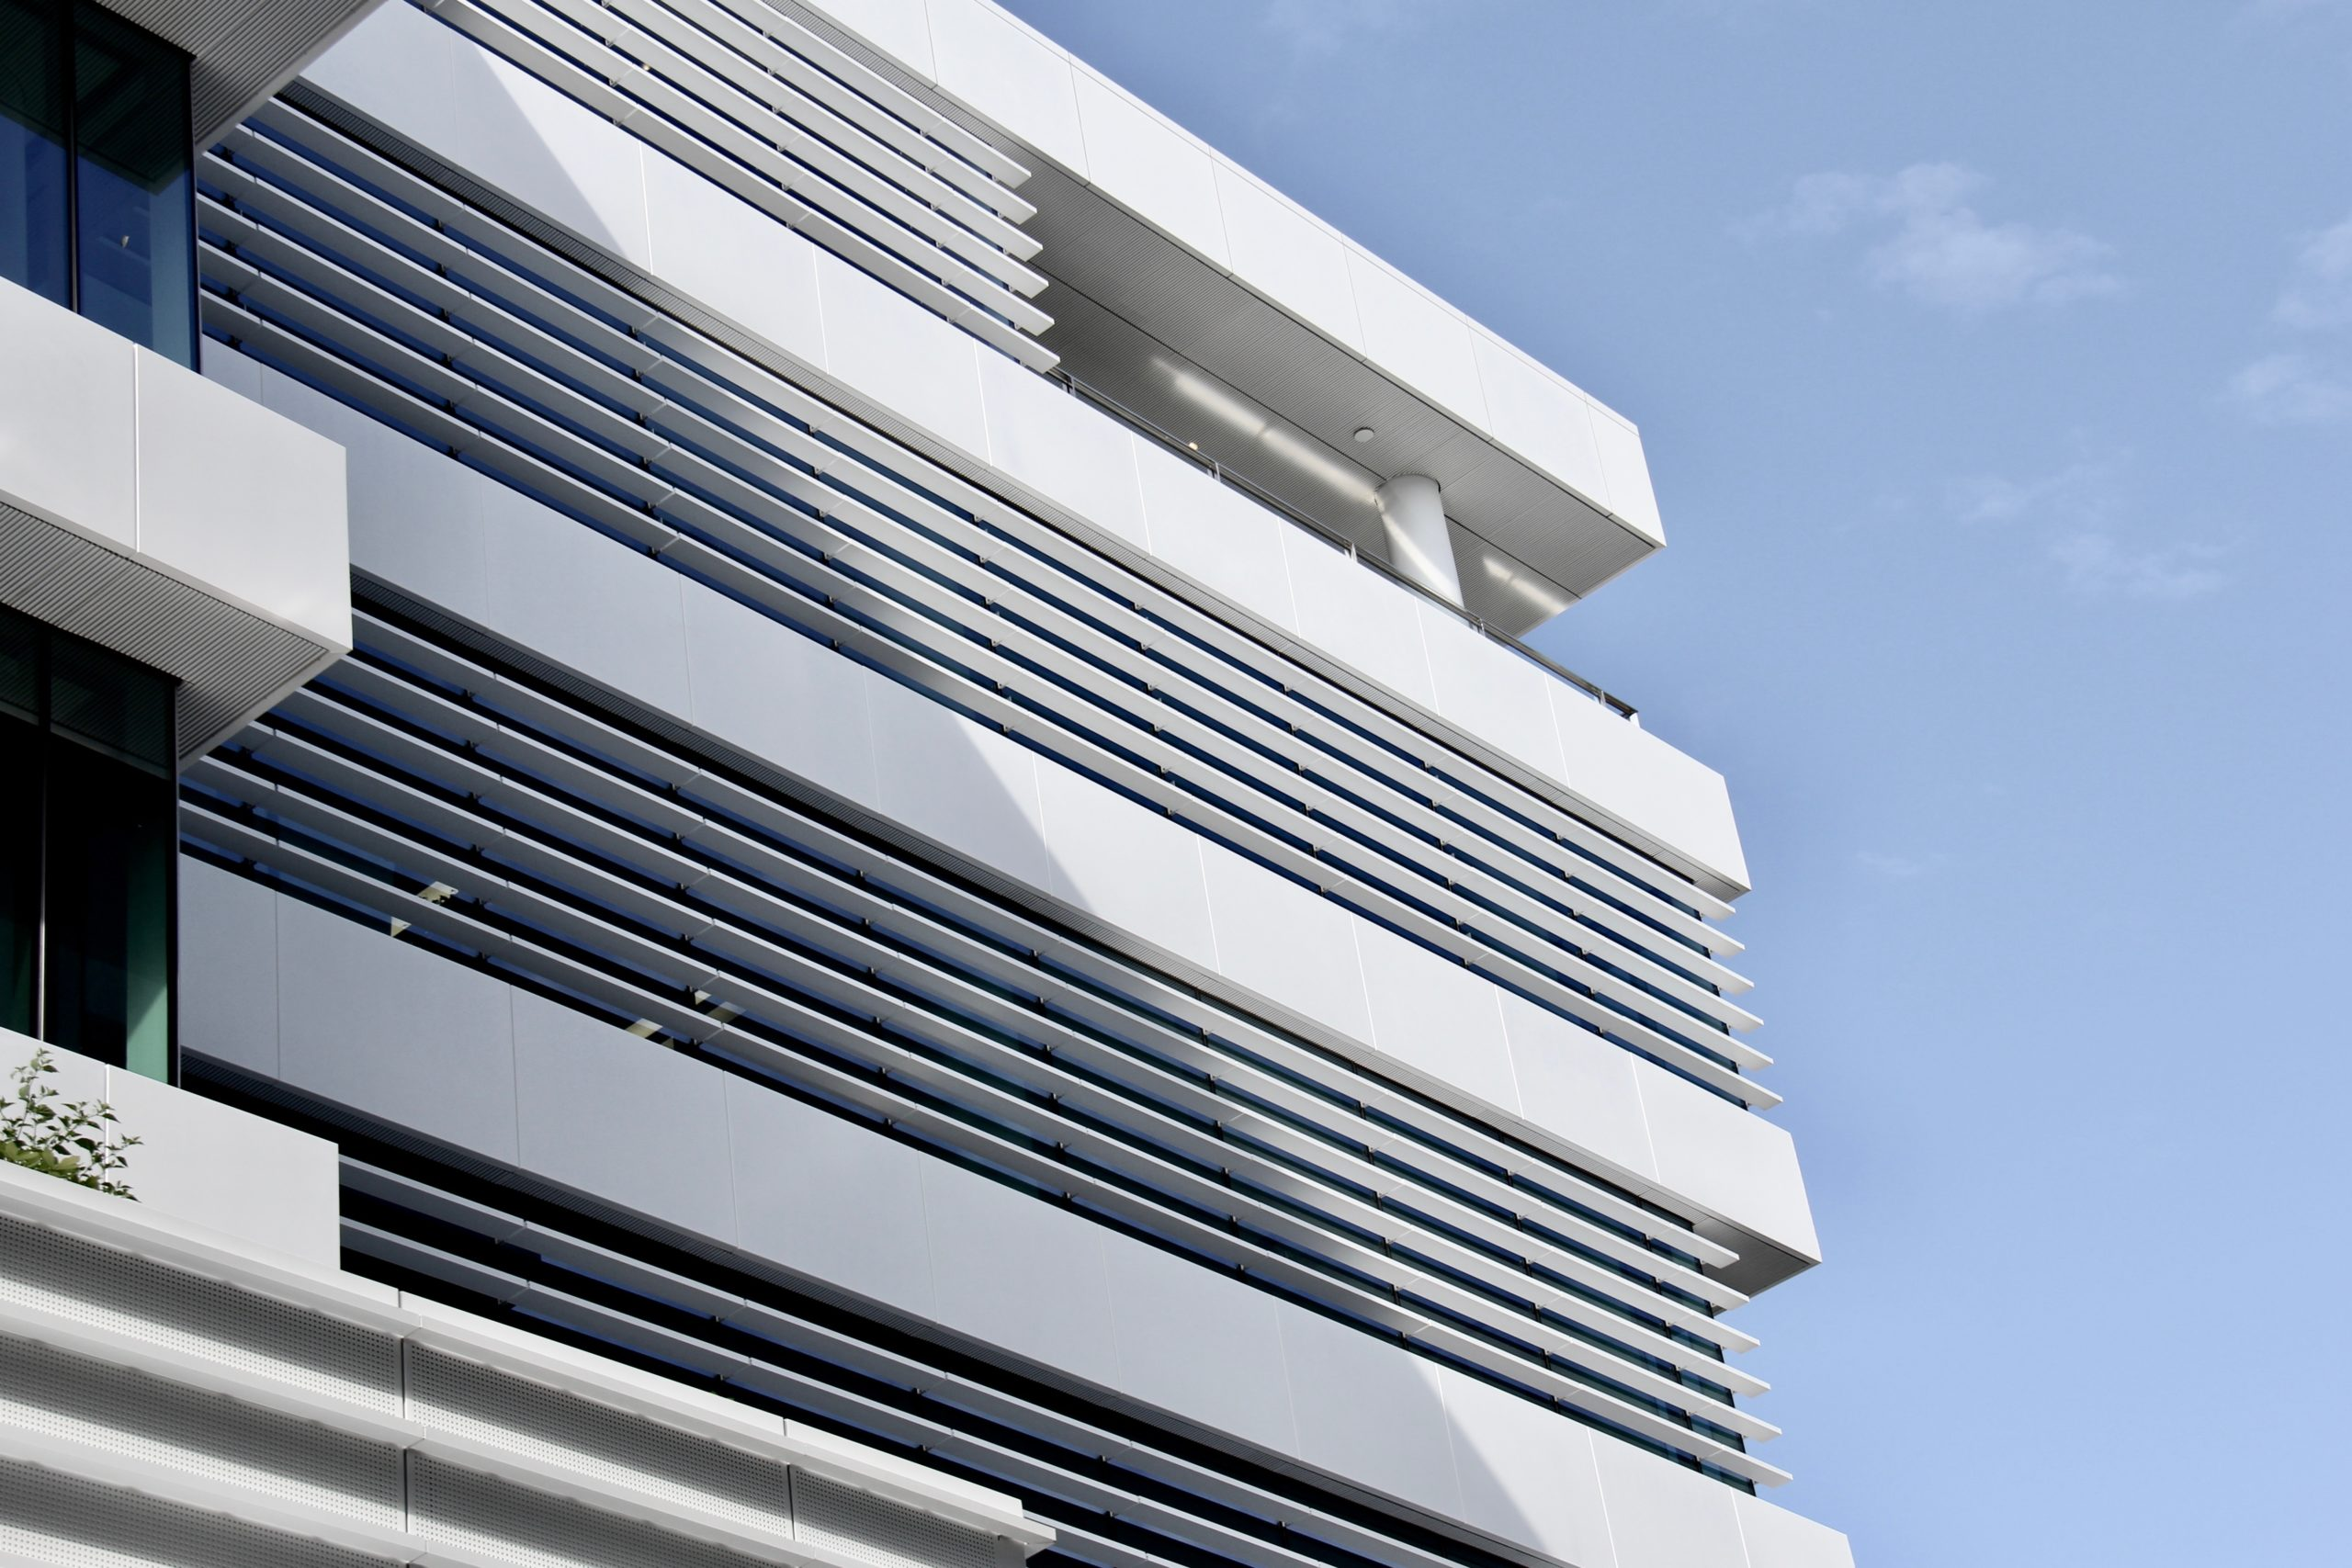 155 Fanshawe St - ACMF Louvres & Screens, perforated screens, plantroom louvres, pergola